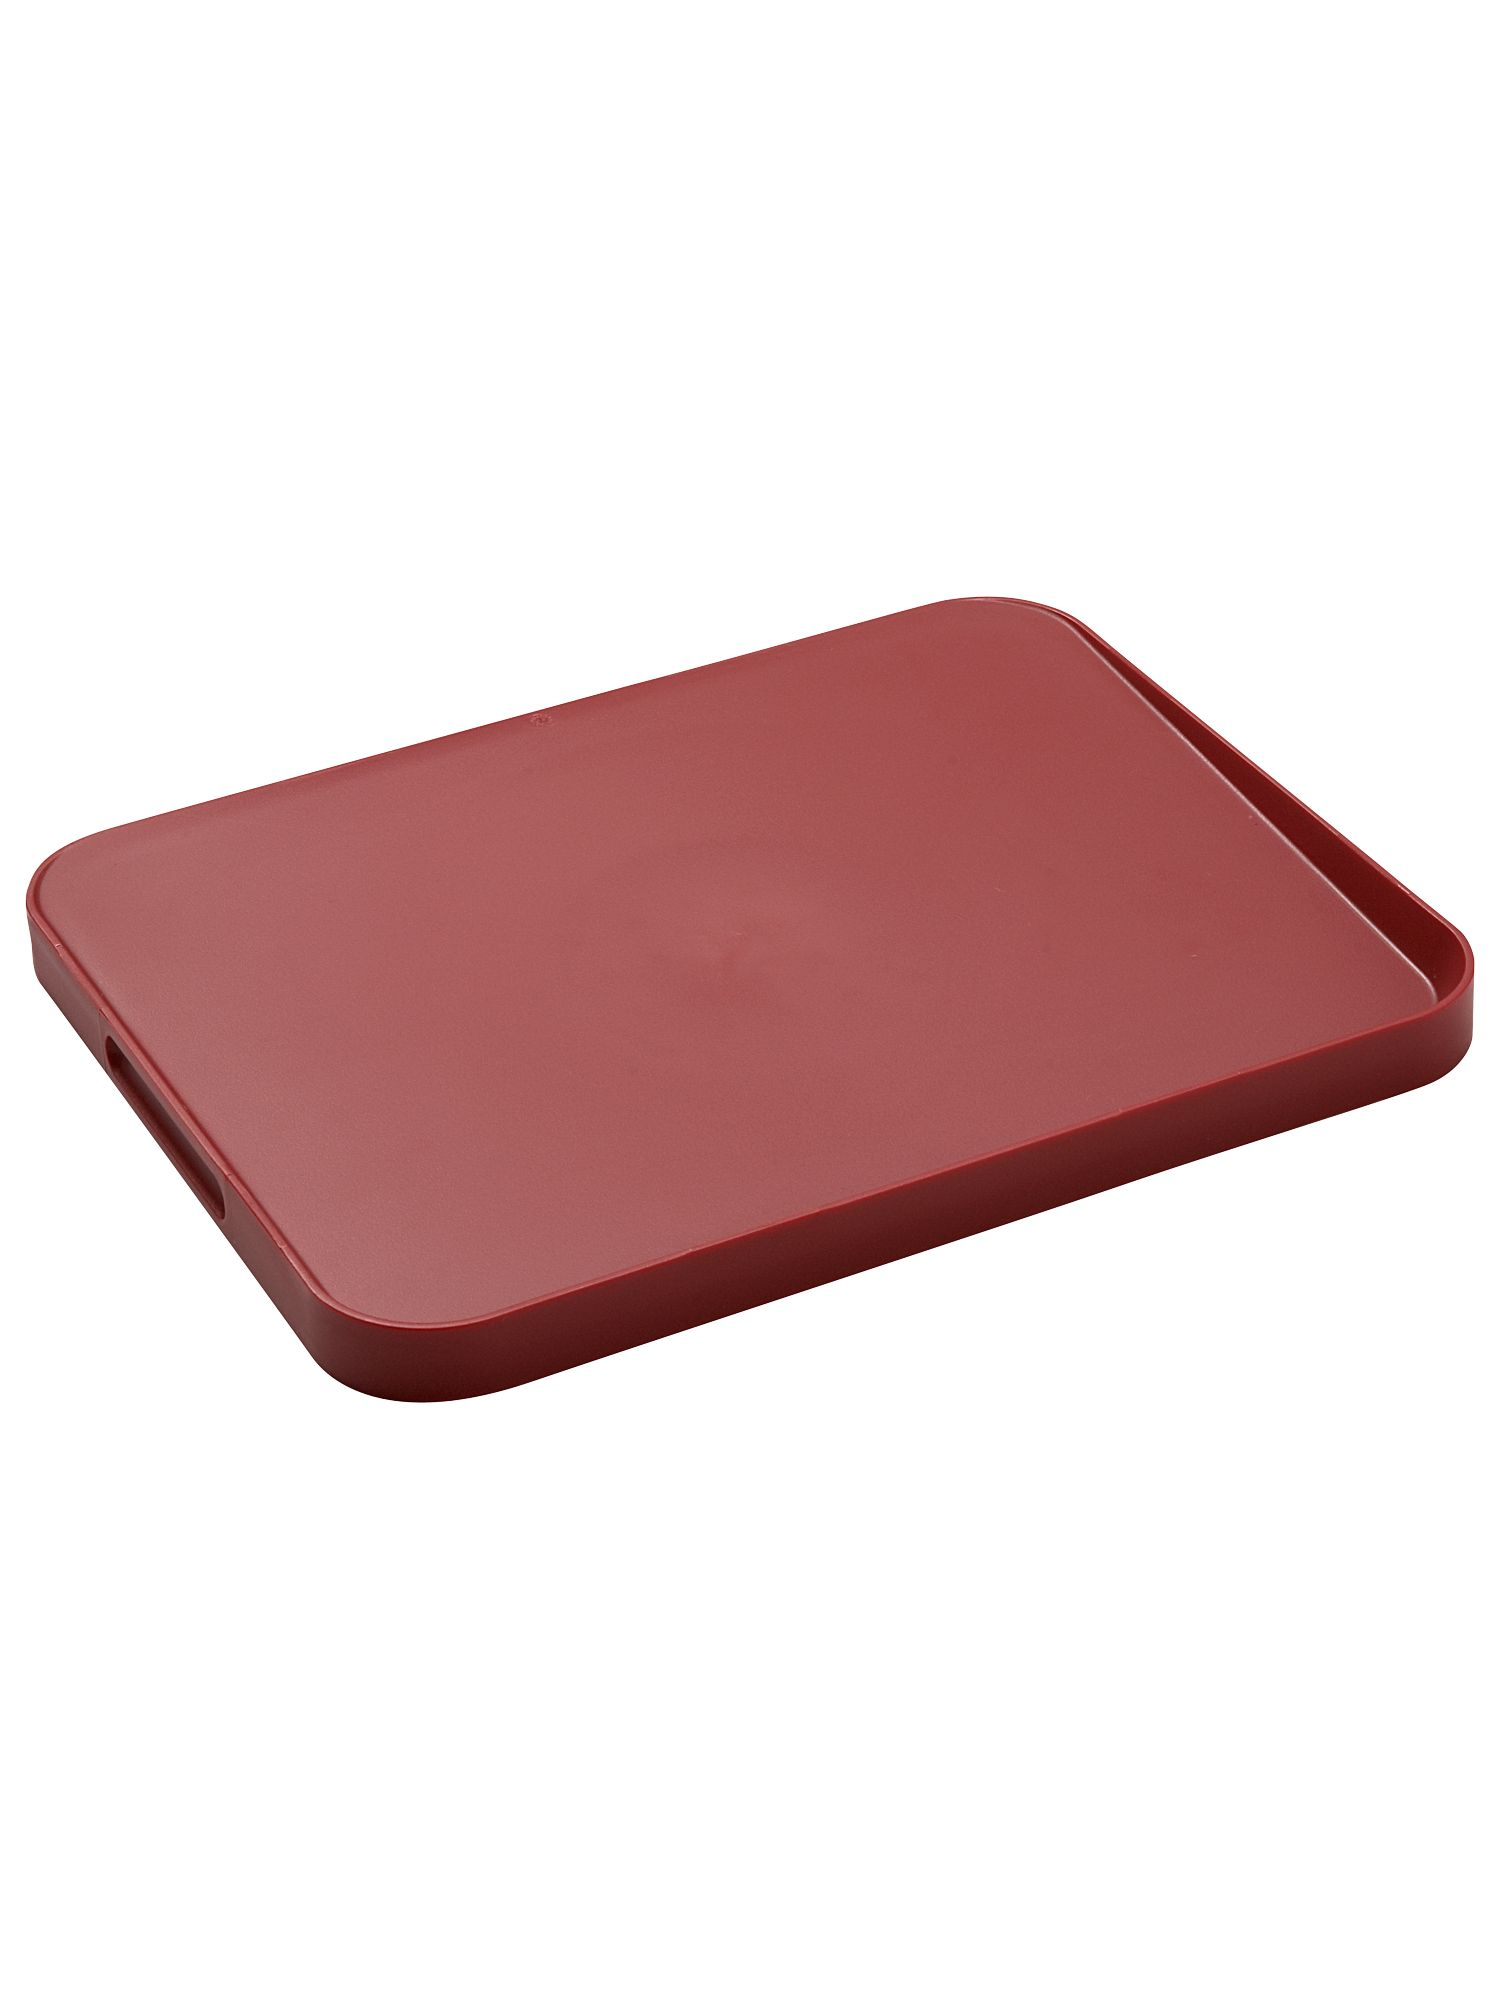 Red Cut & Carve Chopping Board